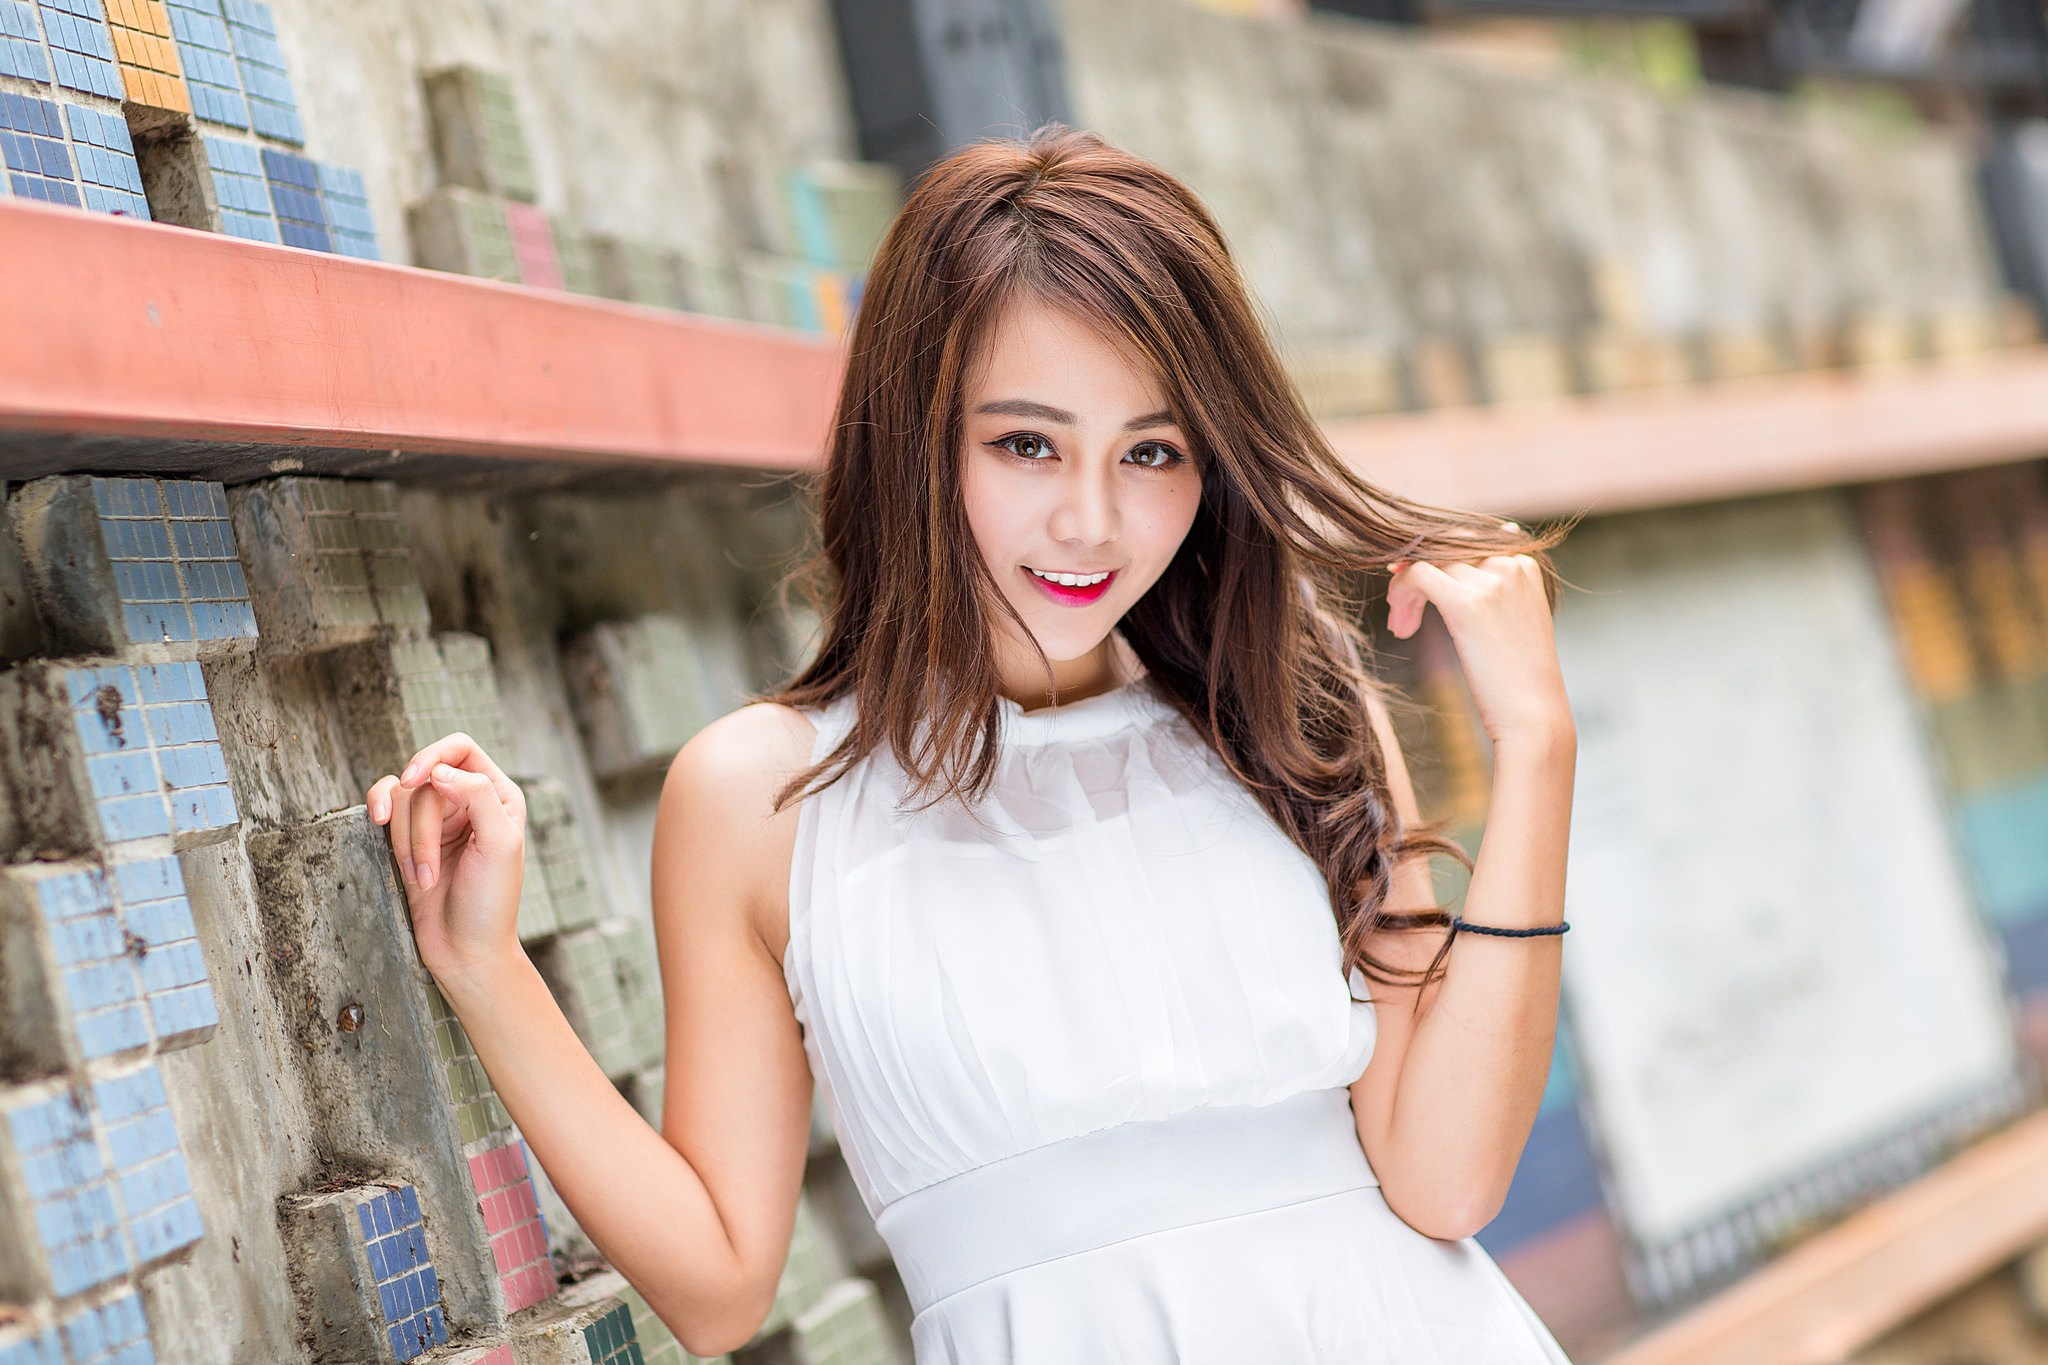 chatsworth asian girl personals Meet asian girls and men online free chat for free with asian singles online today our web site offers unlimited access for you to search our personals ads and picture profiles plus send free messages and use of the live chat rooms.